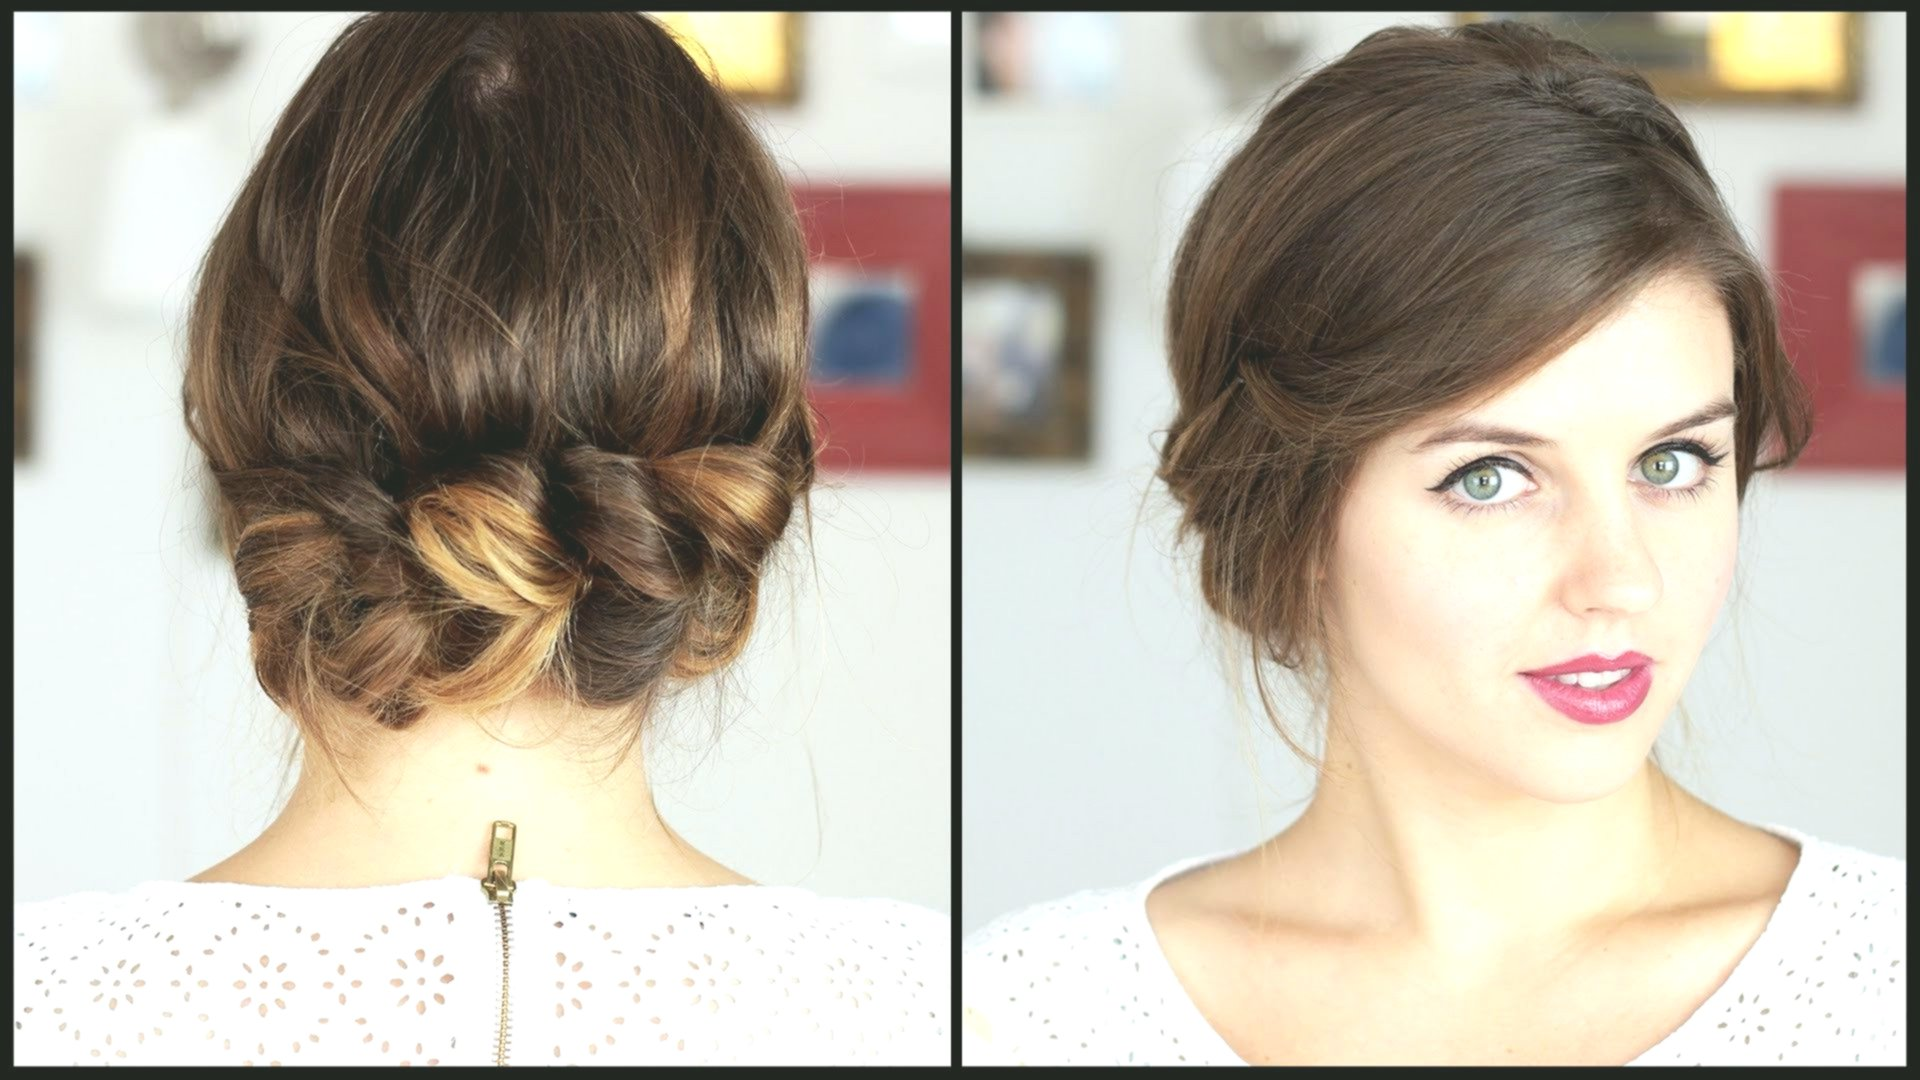 Fancy Hairstyle Waves Gallery-New Hairstyle Waves Photography